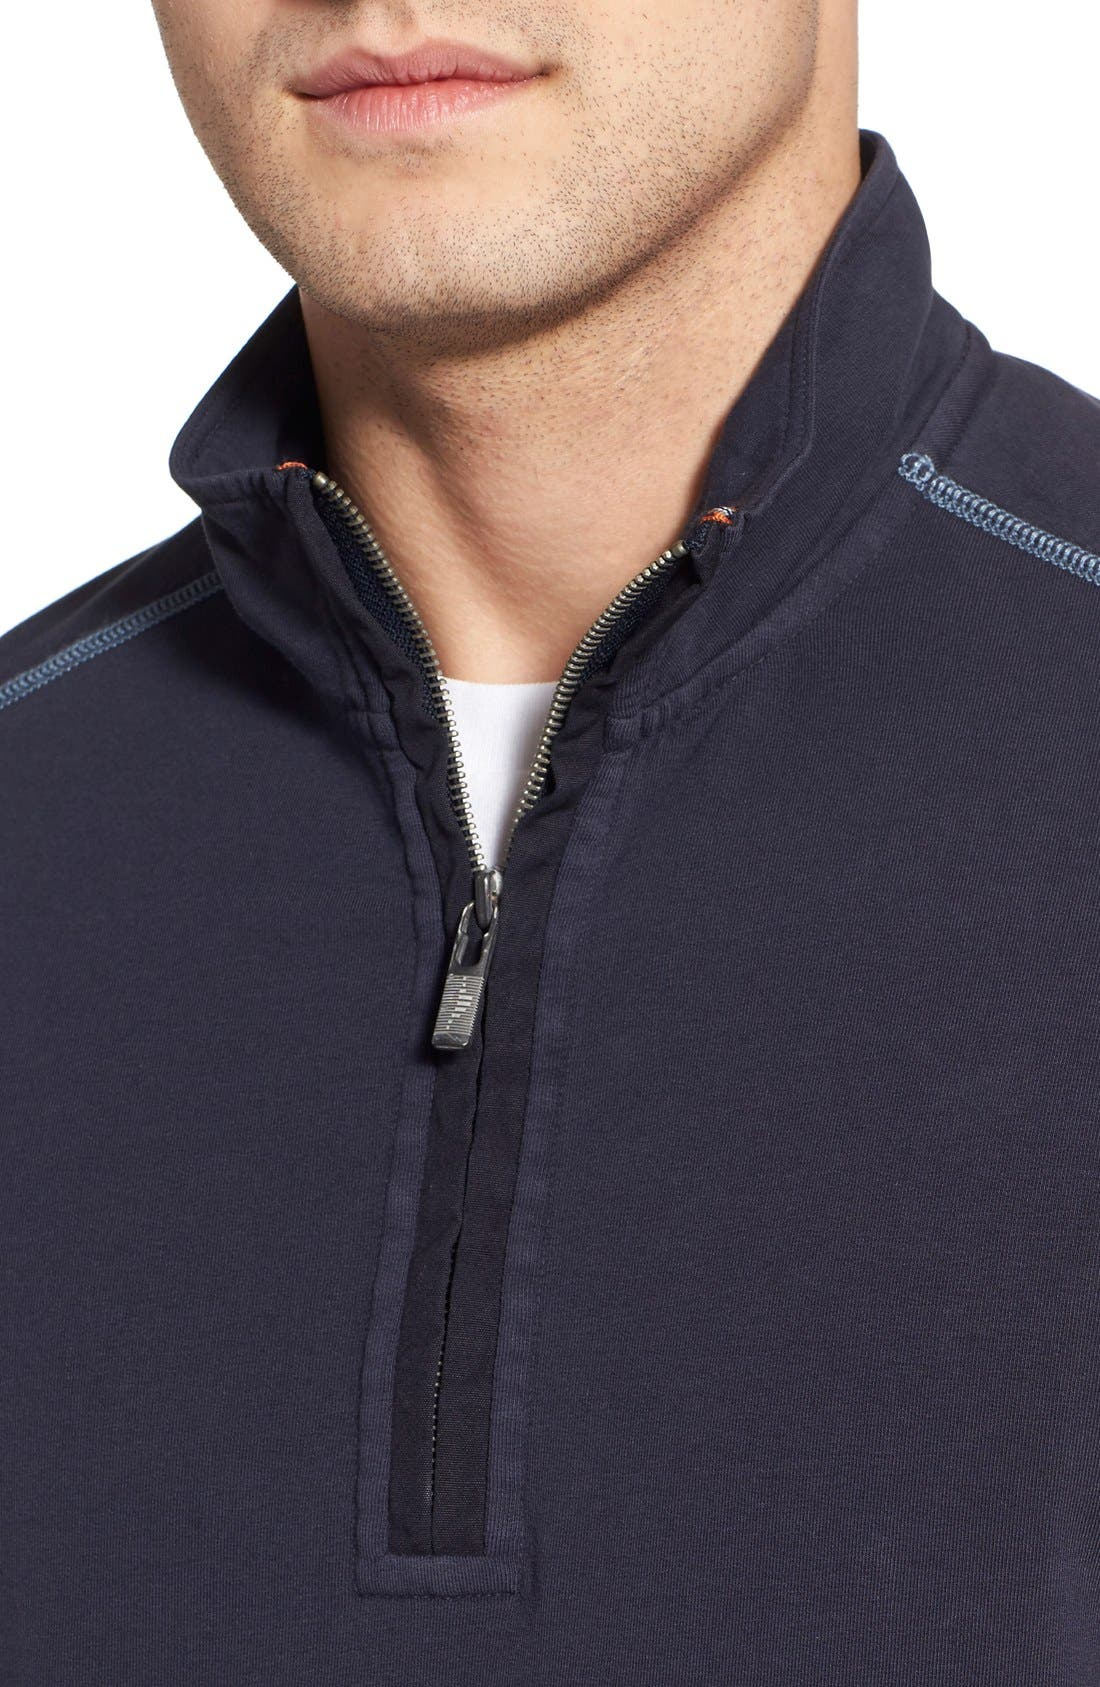 TOMMY BAHAMA,                             'Ben & Terry' Half Zip Pullover,                             Alternate thumbnail 2, color,                             001